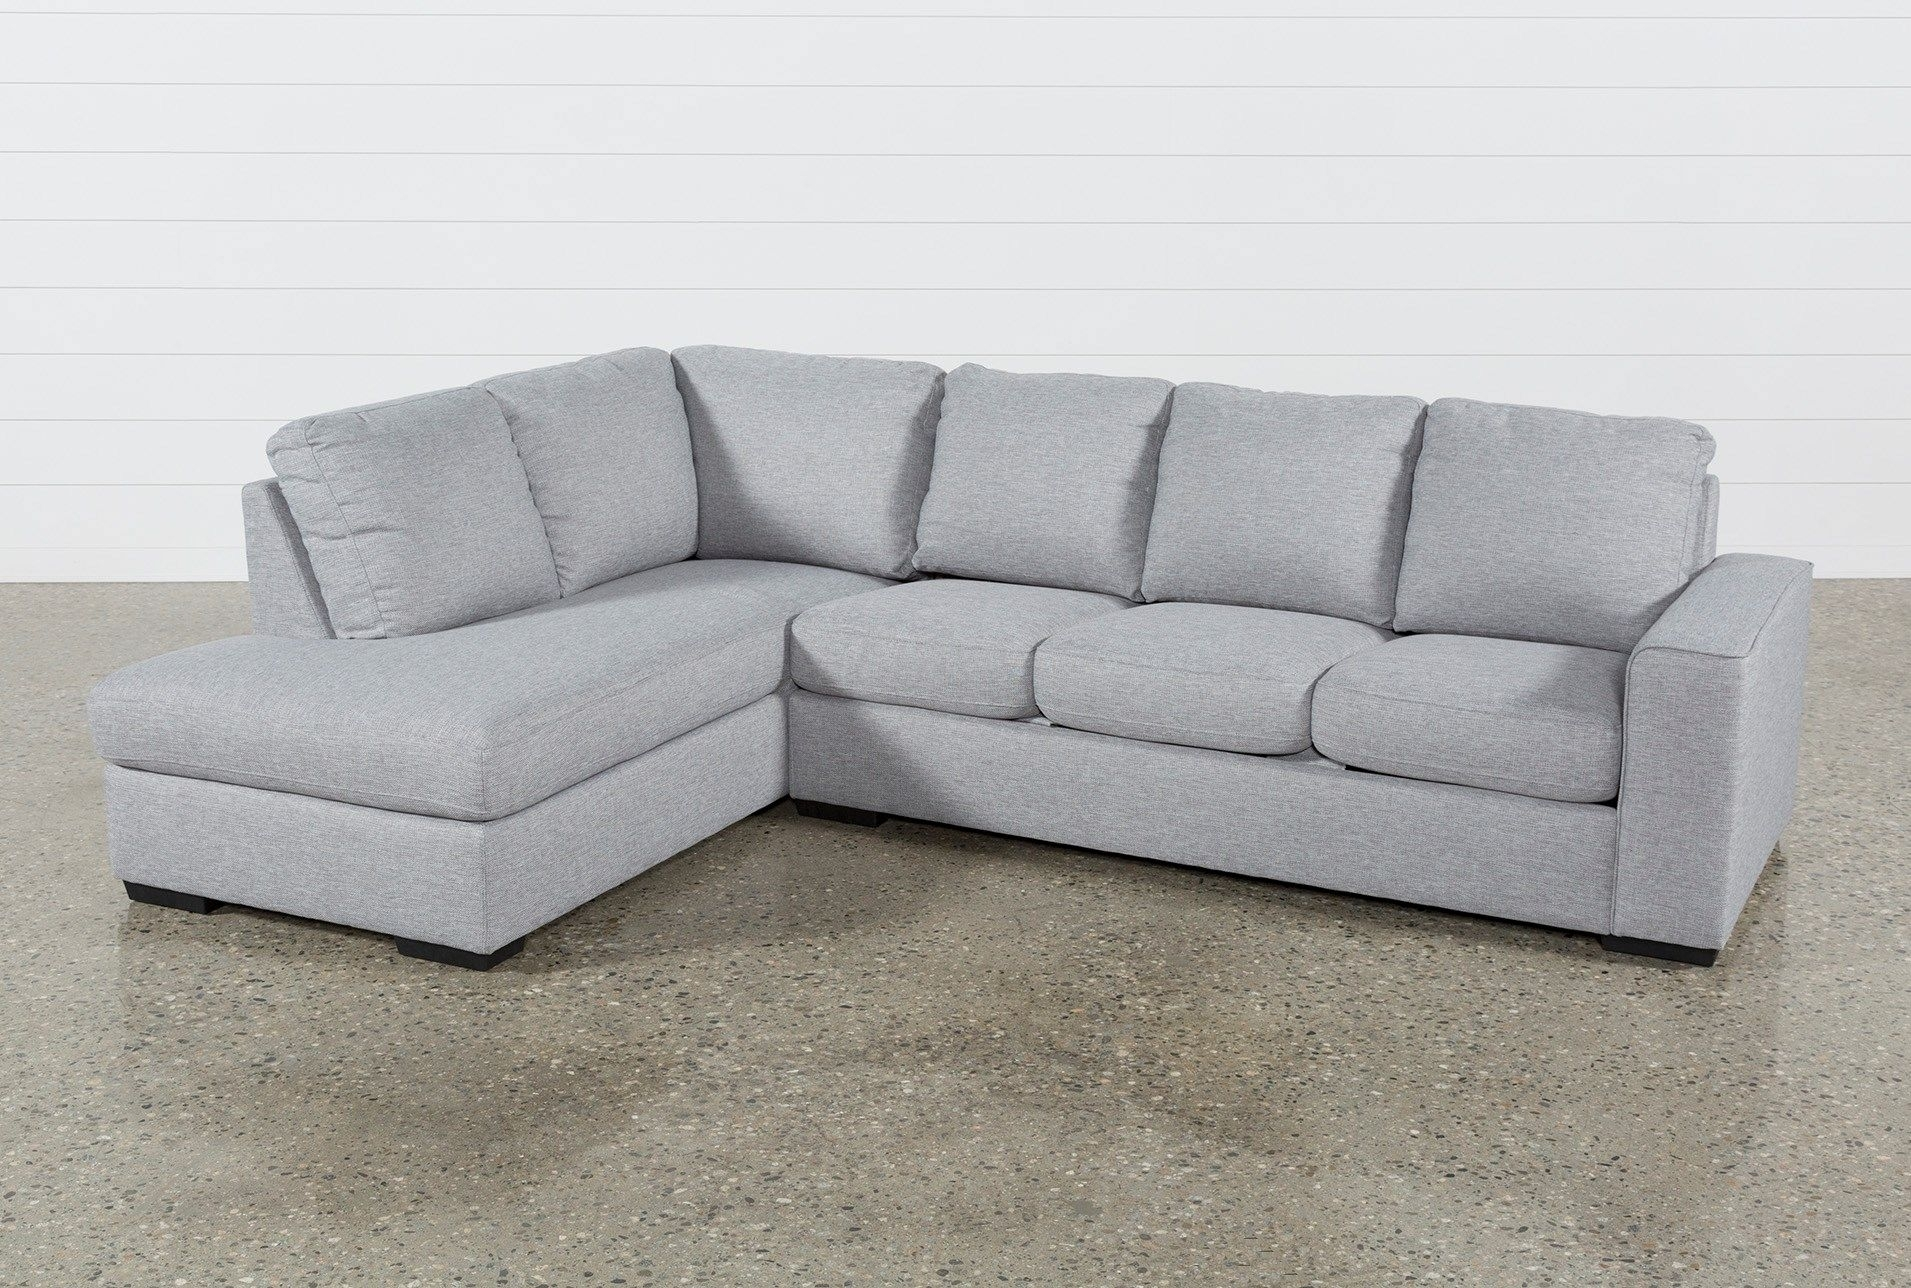 Lucy Grey 2 Piece Sectional W/laf Chaise | Tx House | Pinterest For Aquarius Dark Grey 2 Piece Sectionals With Laf Chaise (View 7 of 25)